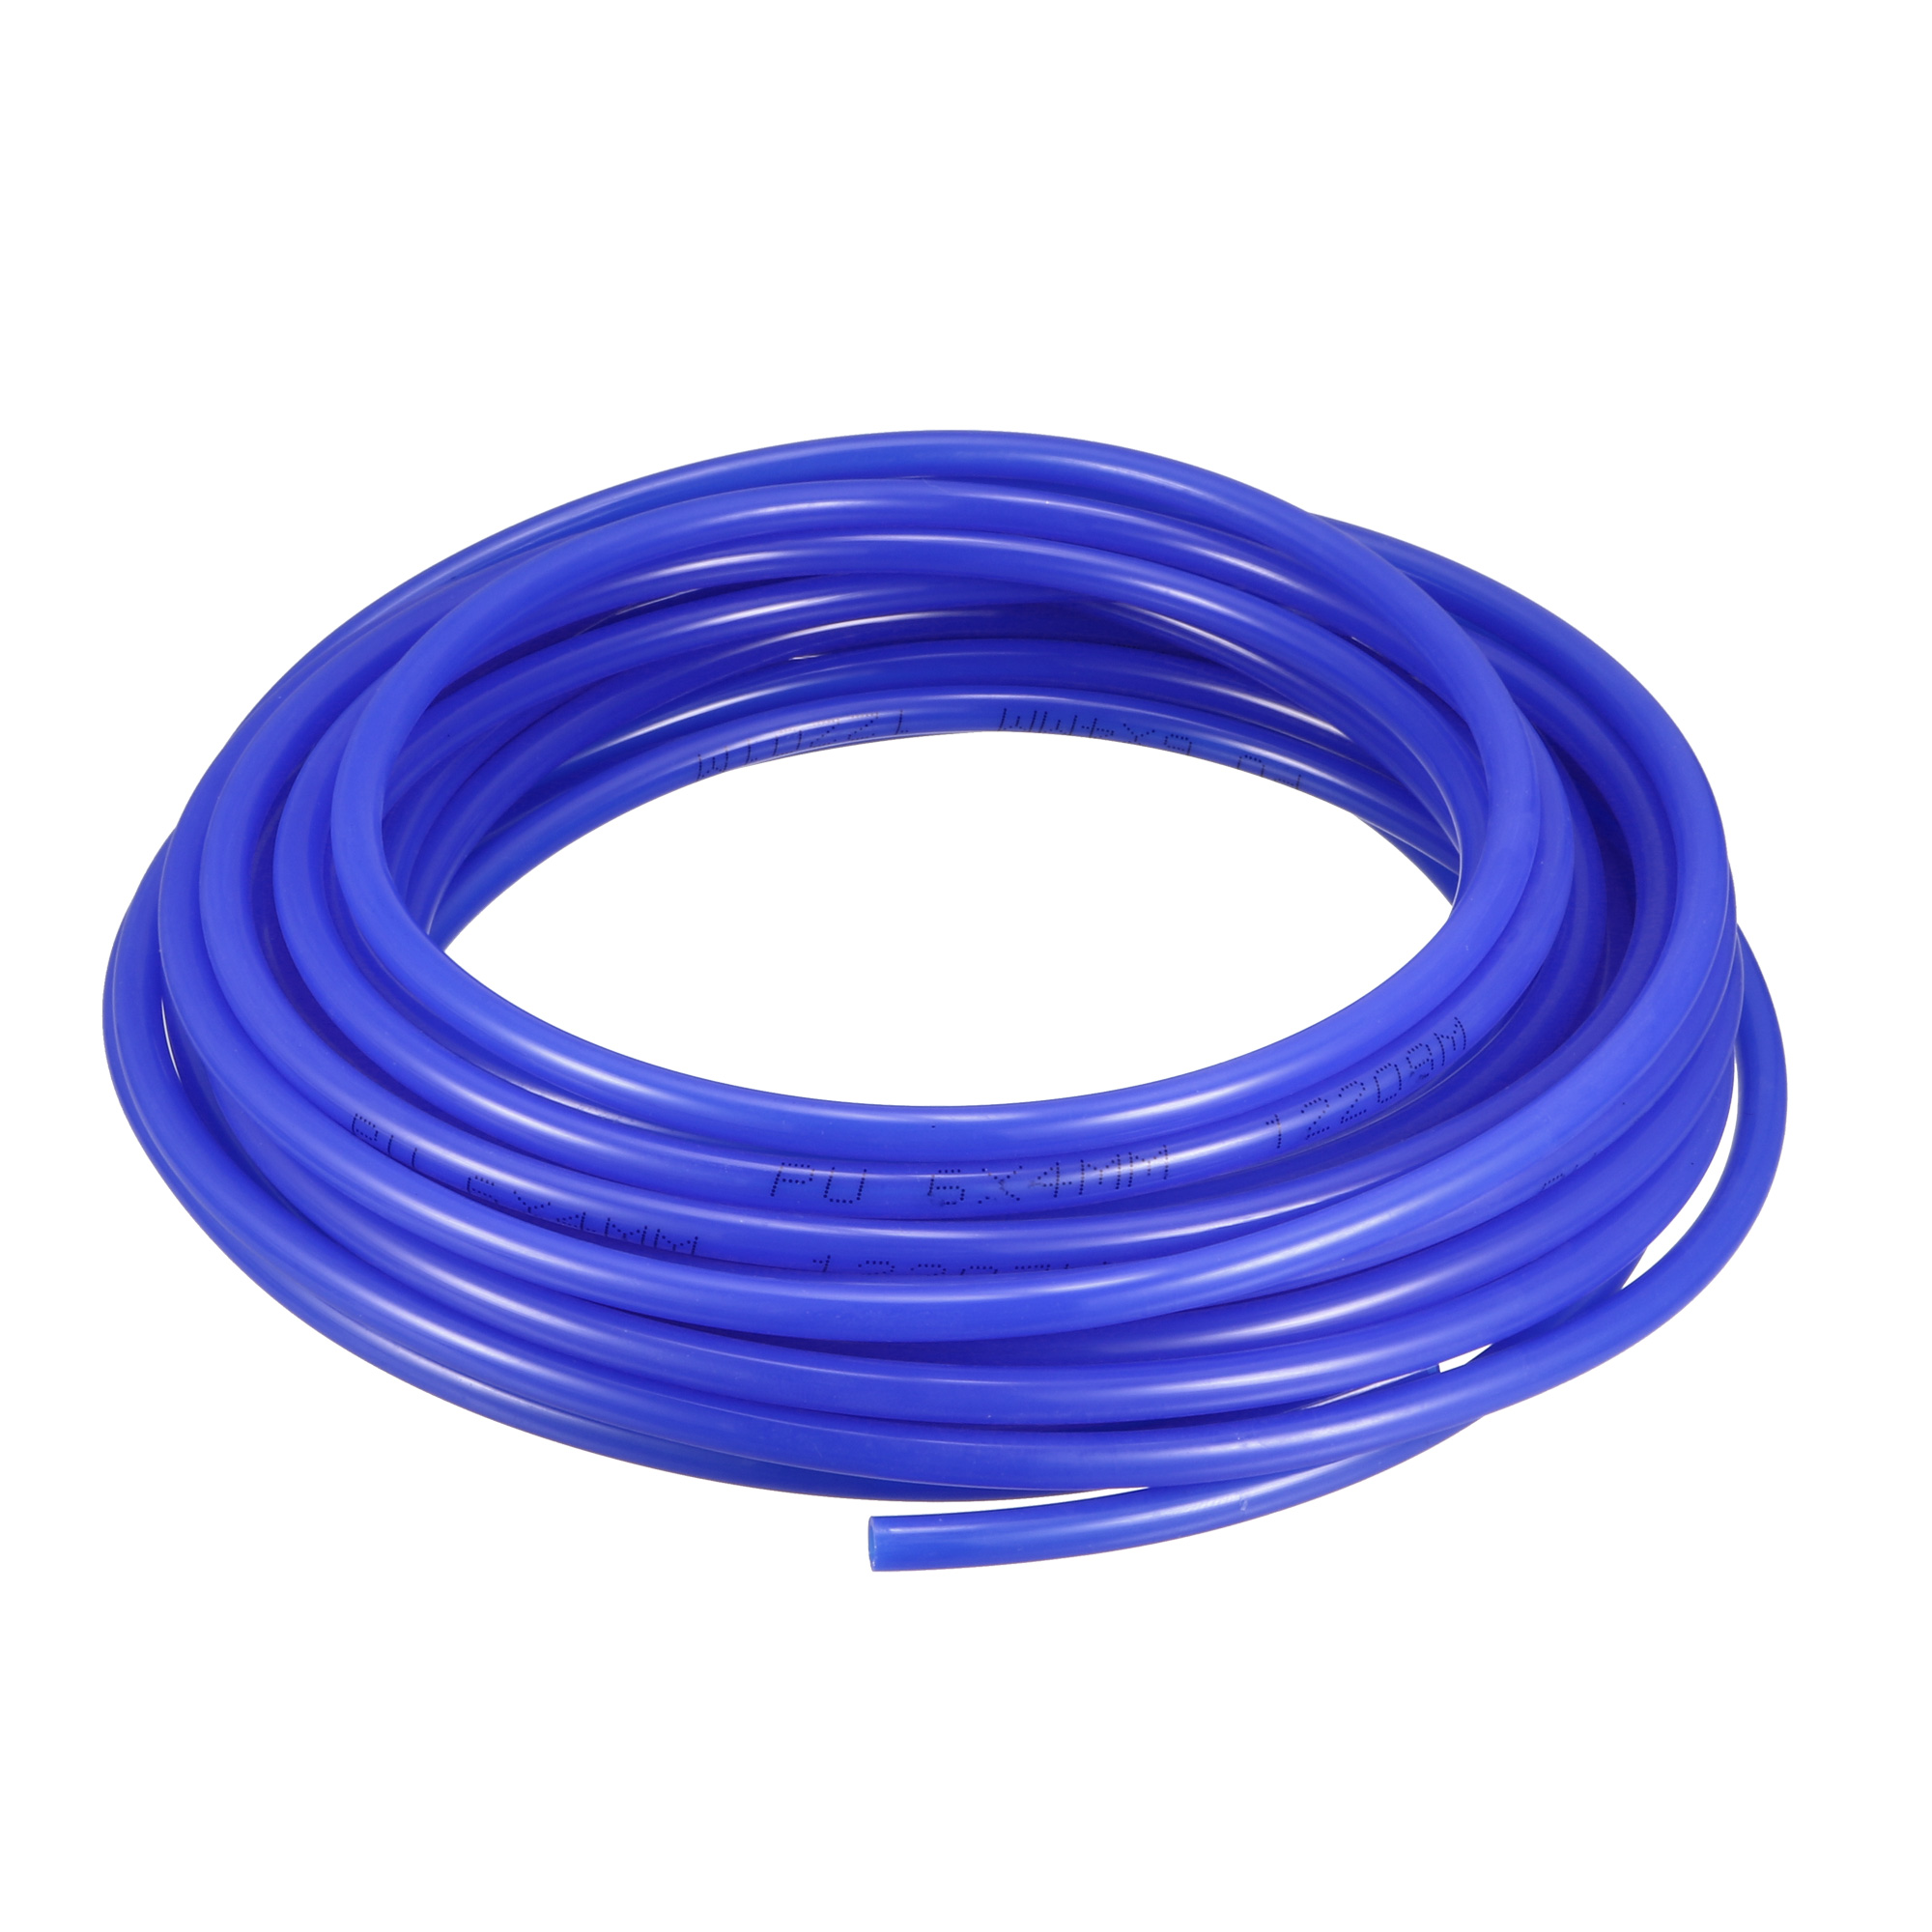 10M 32.8Ft 6mm x 4mm Pneumatic Polyurethane PU Hose Tube Pipe Blue